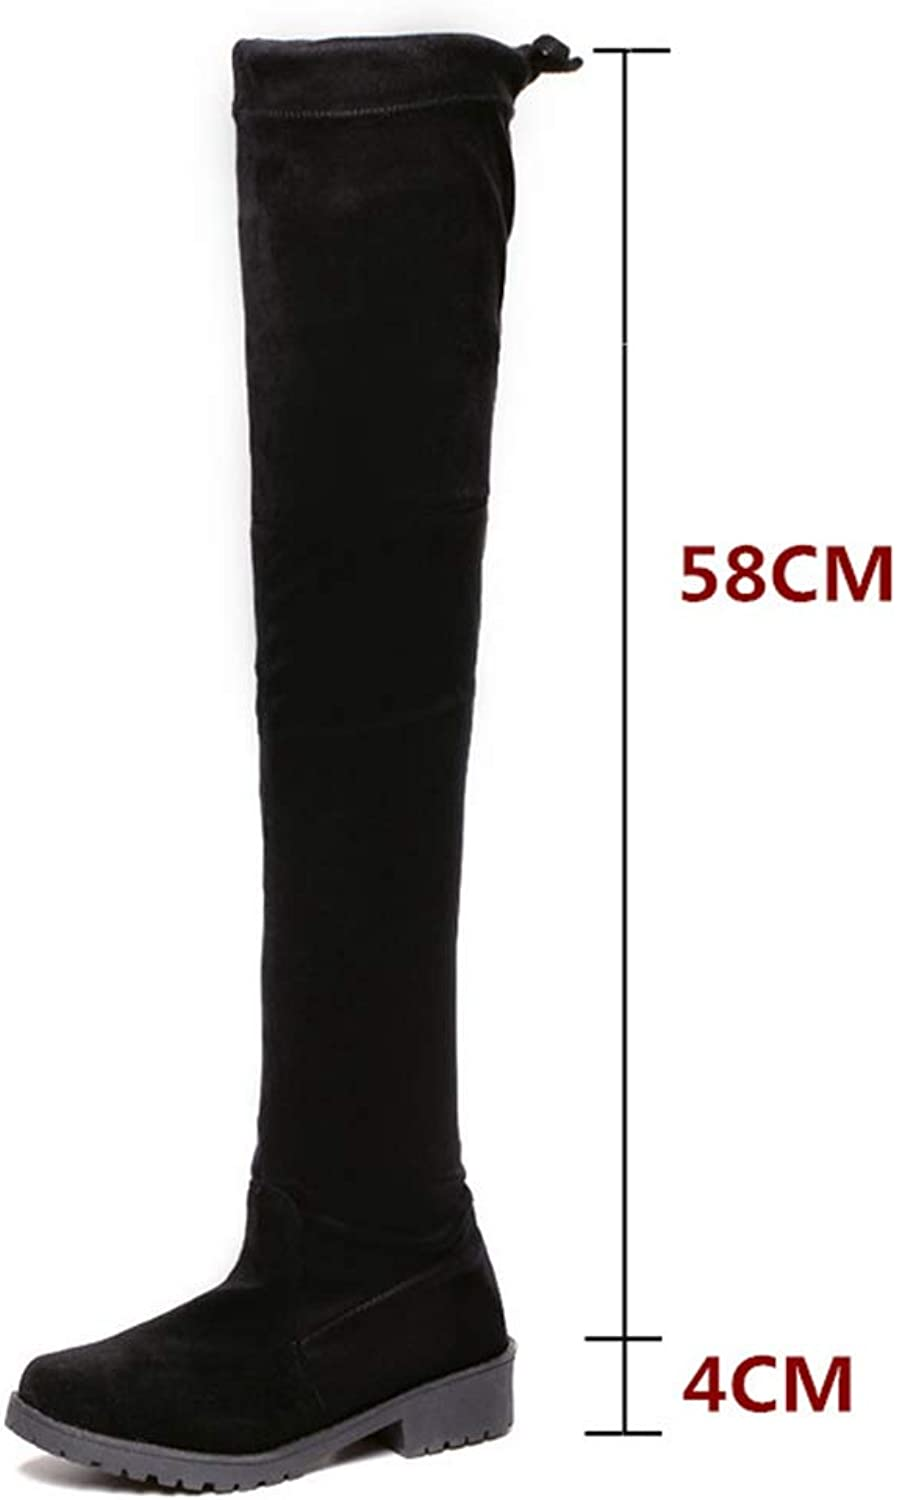 Hoxekle Woman Over The Knee Boots Lace up Slip On Anti-Slip Round Toe Low Heel Anti-Slip Winter Female Sexy Long Boot